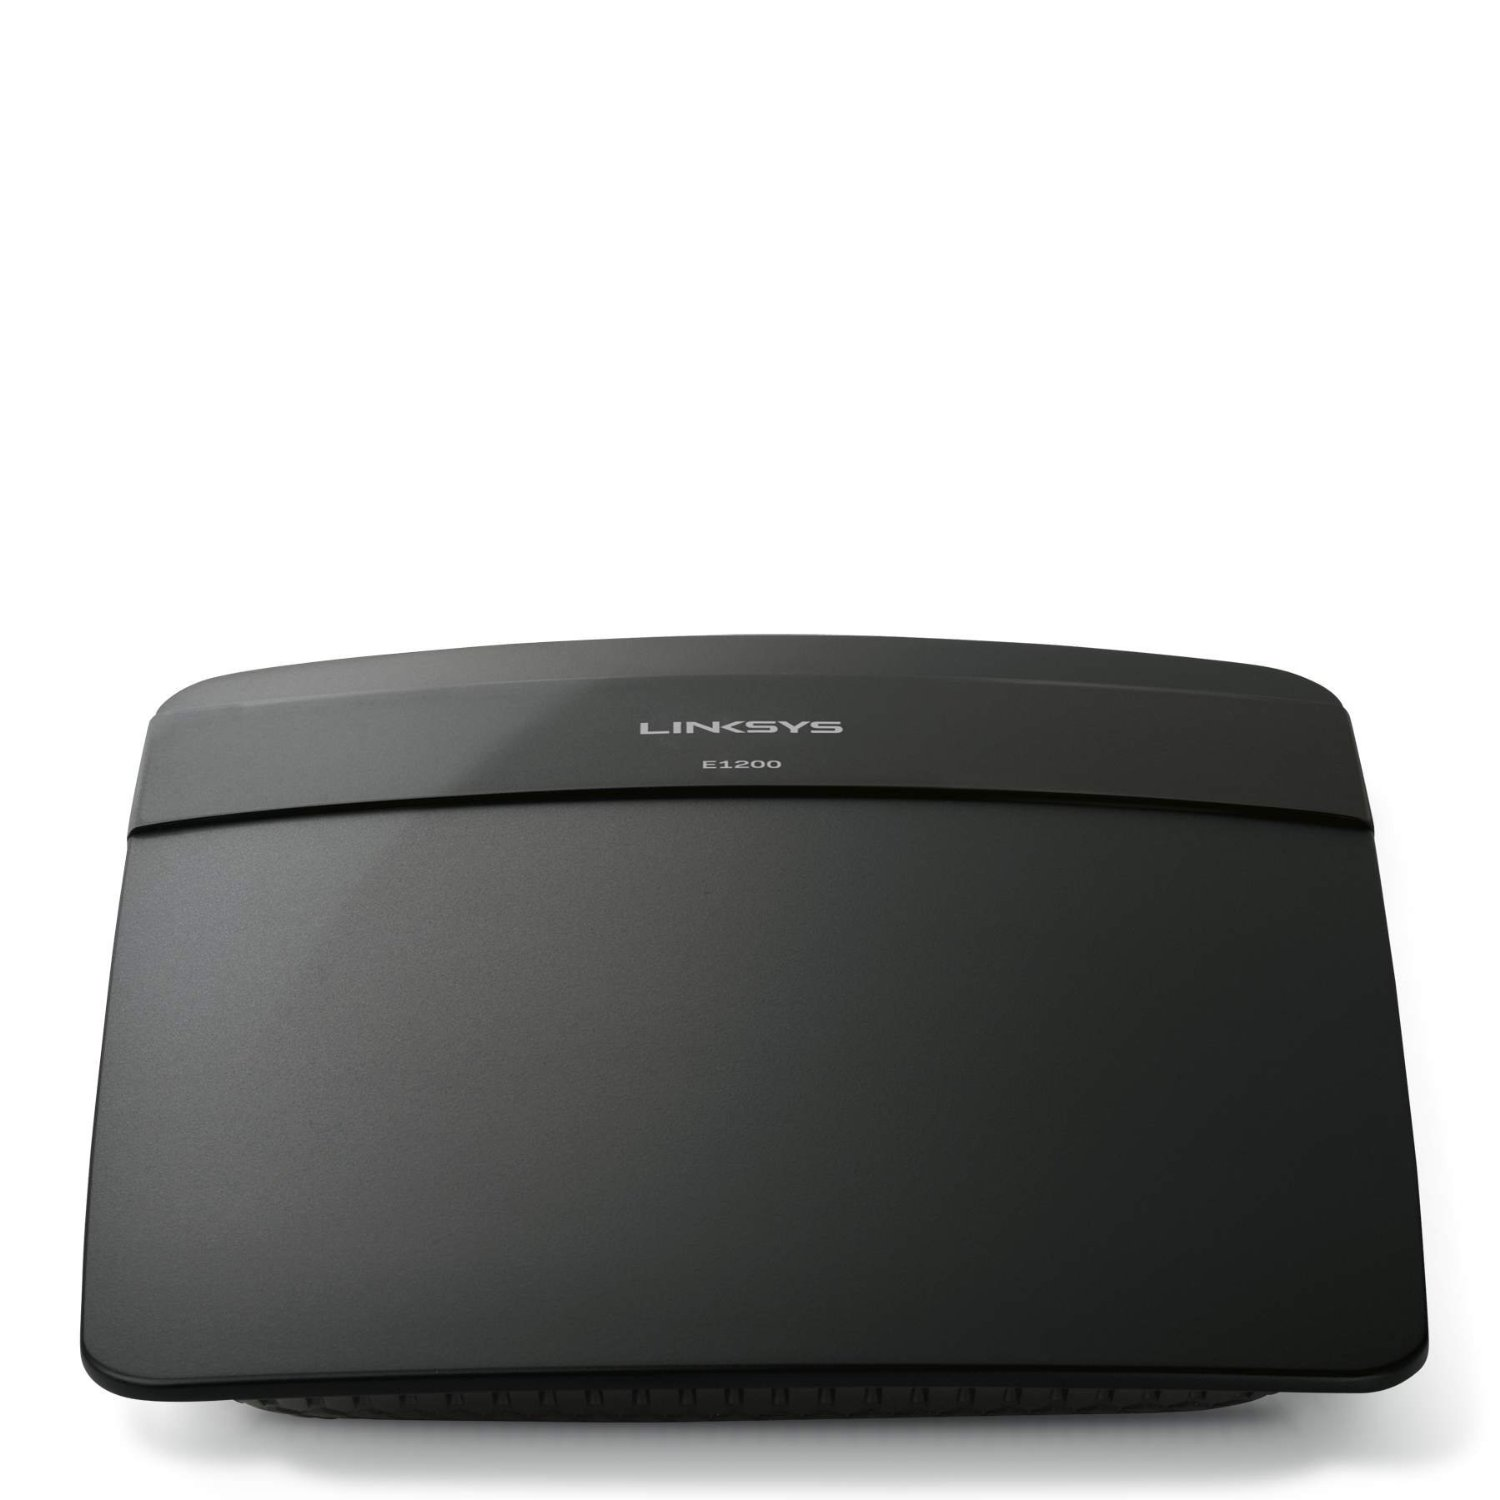 Linksys E1200 Wireless AP